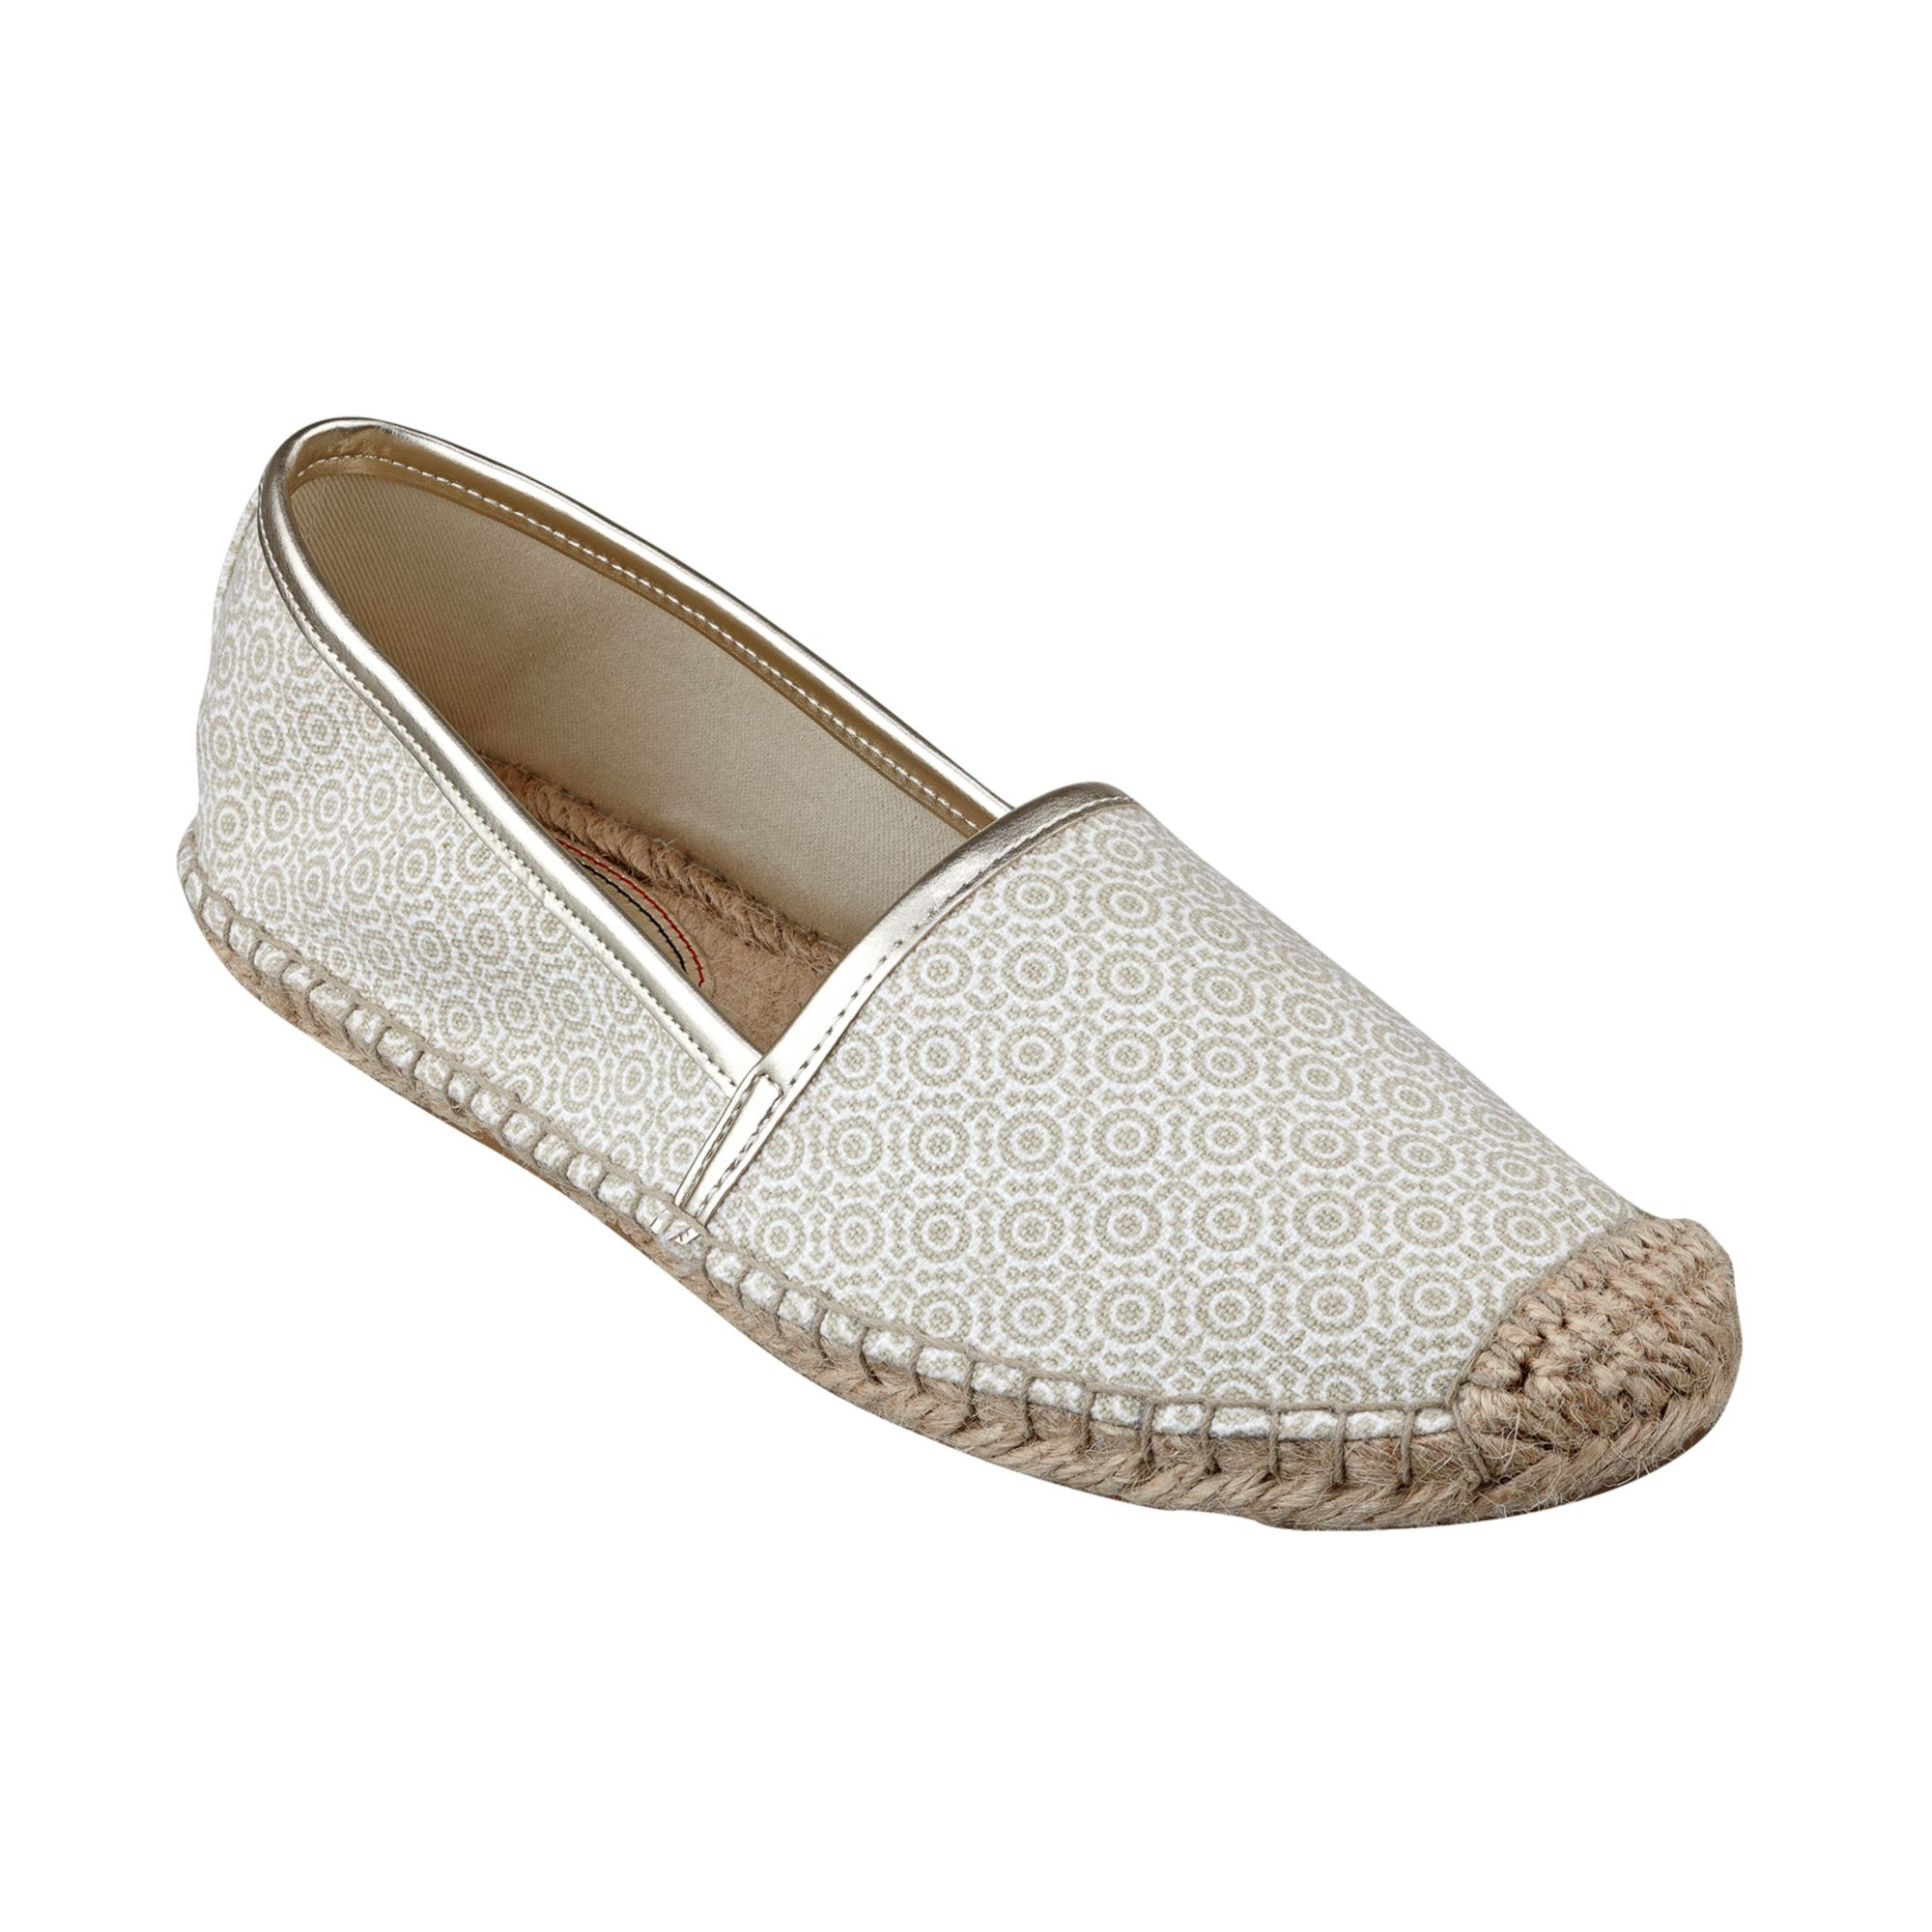 tommy hilfiger womens heyda espadrille flats in white lyst. Black Bedroom Furniture Sets. Home Design Ideas